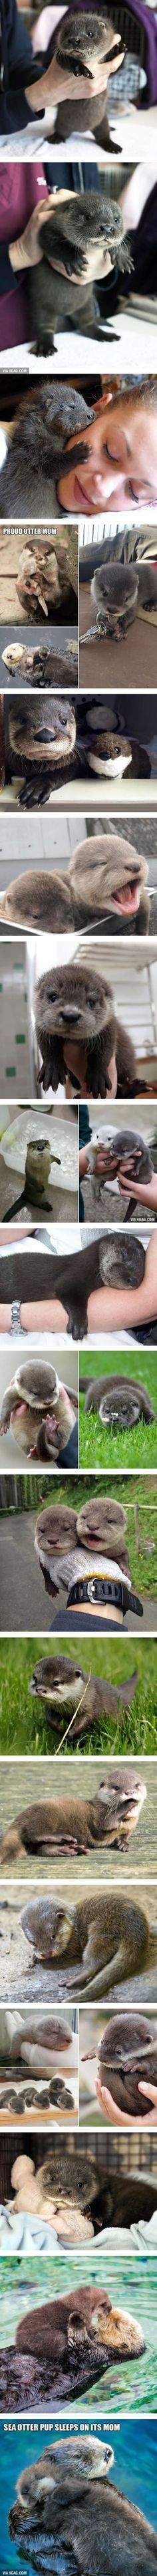 Cuteness overloaded: Baby Otters